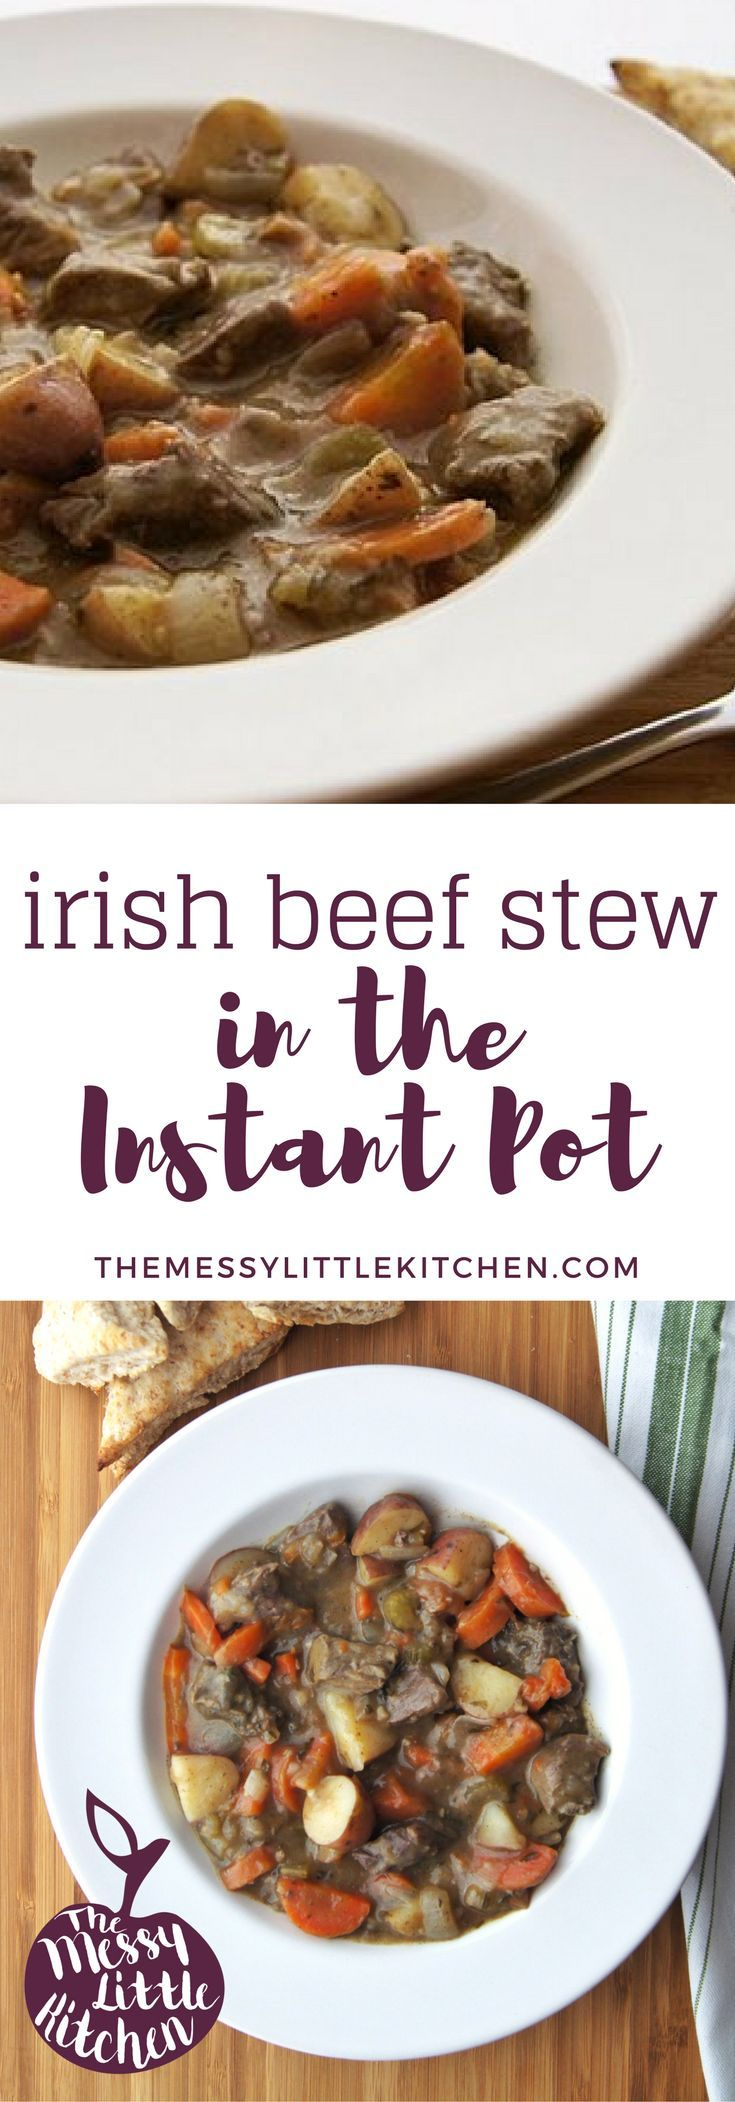 Perhaps you're planning an Irish themed party, or simply looking for ideas for St. Patrick's Day dishes. Regardless, this delicious, fast and easy Irish Beef Stew in the Instant Pot is one that you can throw almost effortlessly into your pressure cooker and it is sure to become a new family favourite! Hearty, loaded with veggies, and requiring only a few minutes of preparation for a delicious, rich flavour as though it was simmering all day!